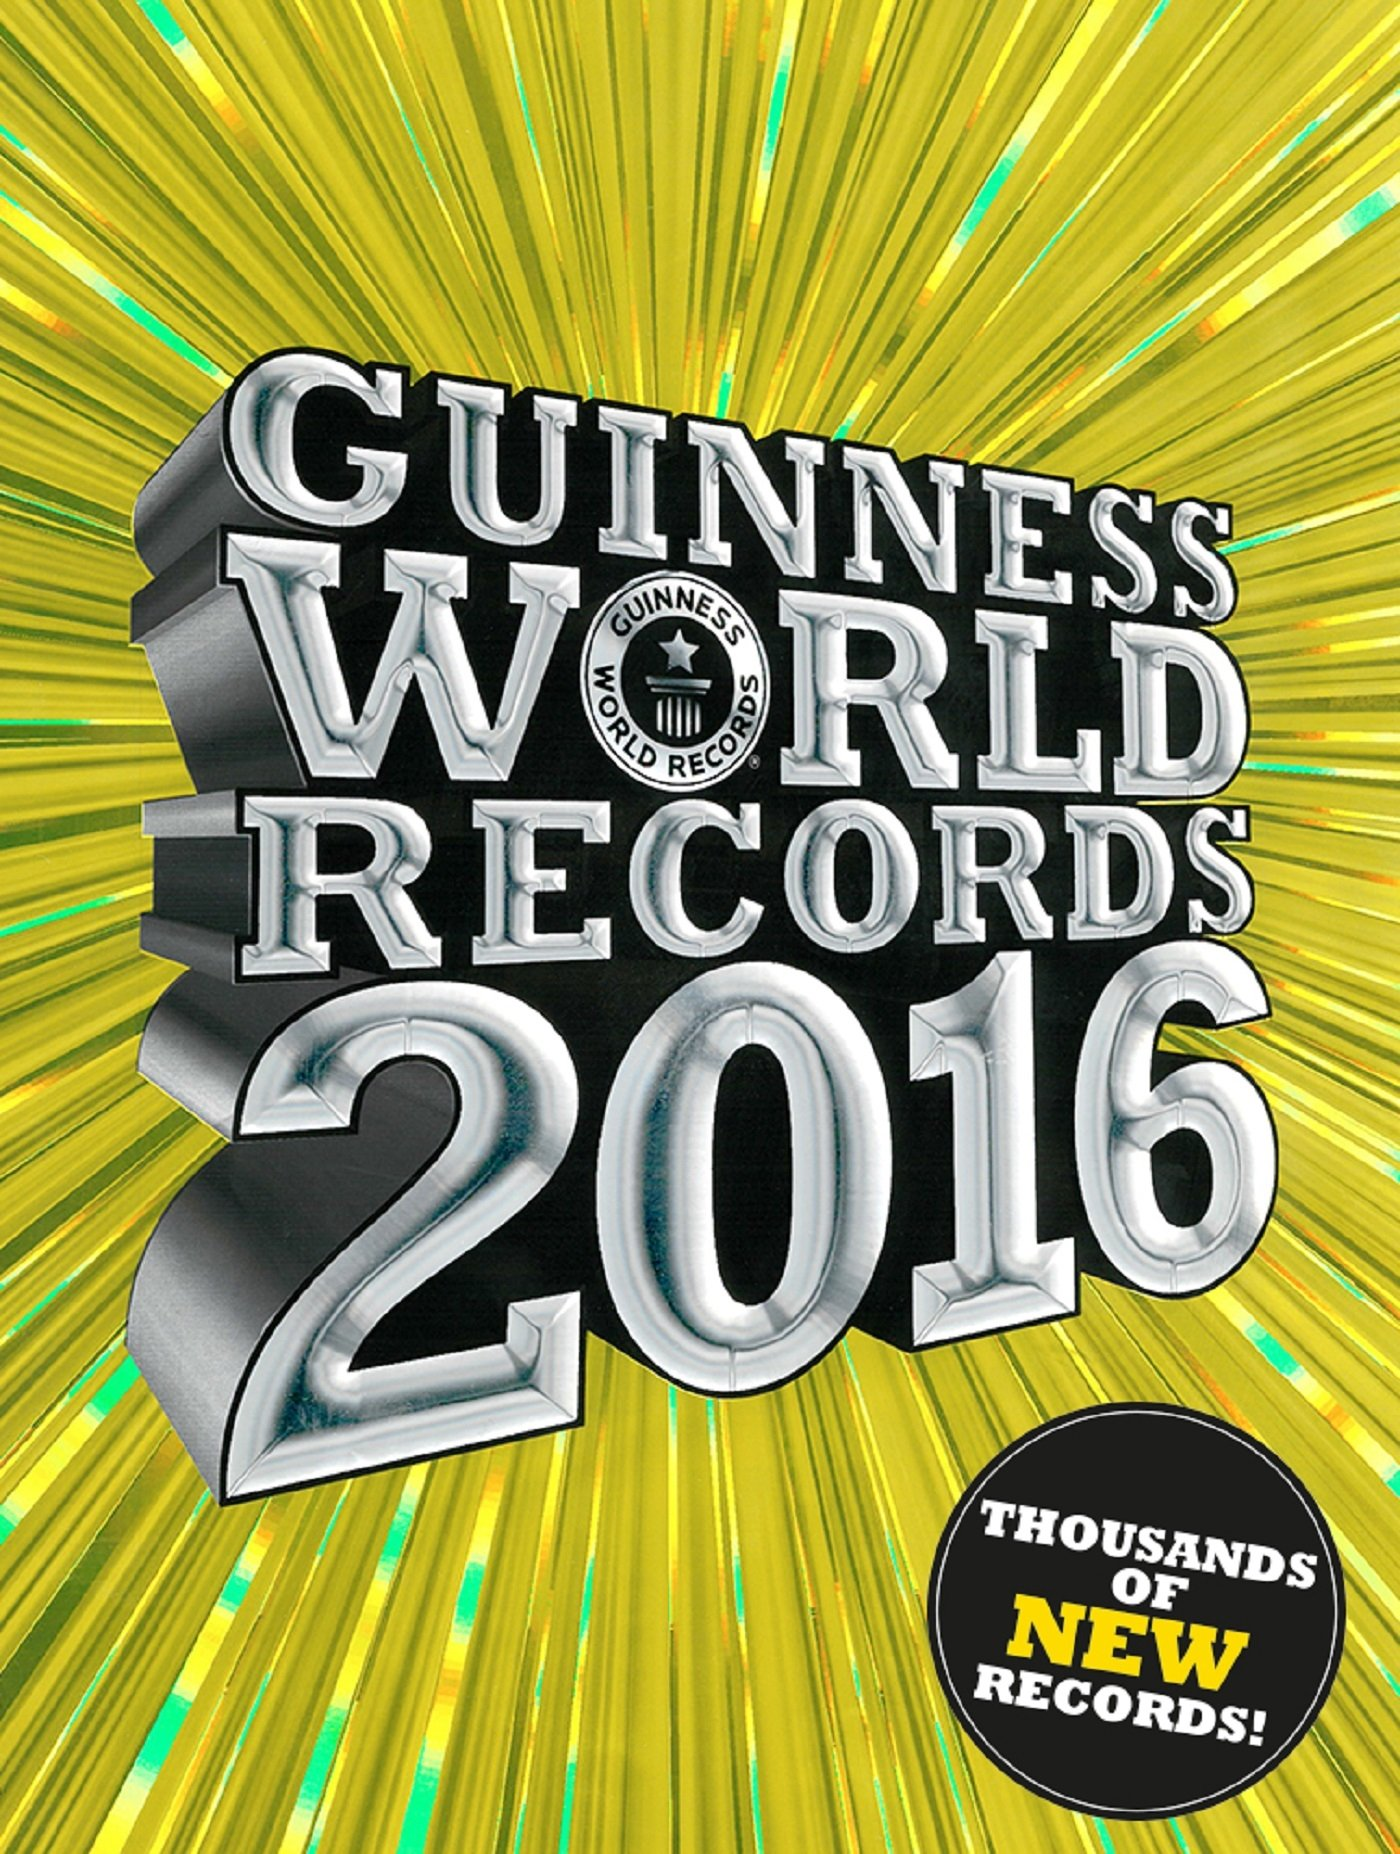 Libro Record Guinness 2017 Guinness World Records 2016 Book For 10 13 Stretching A